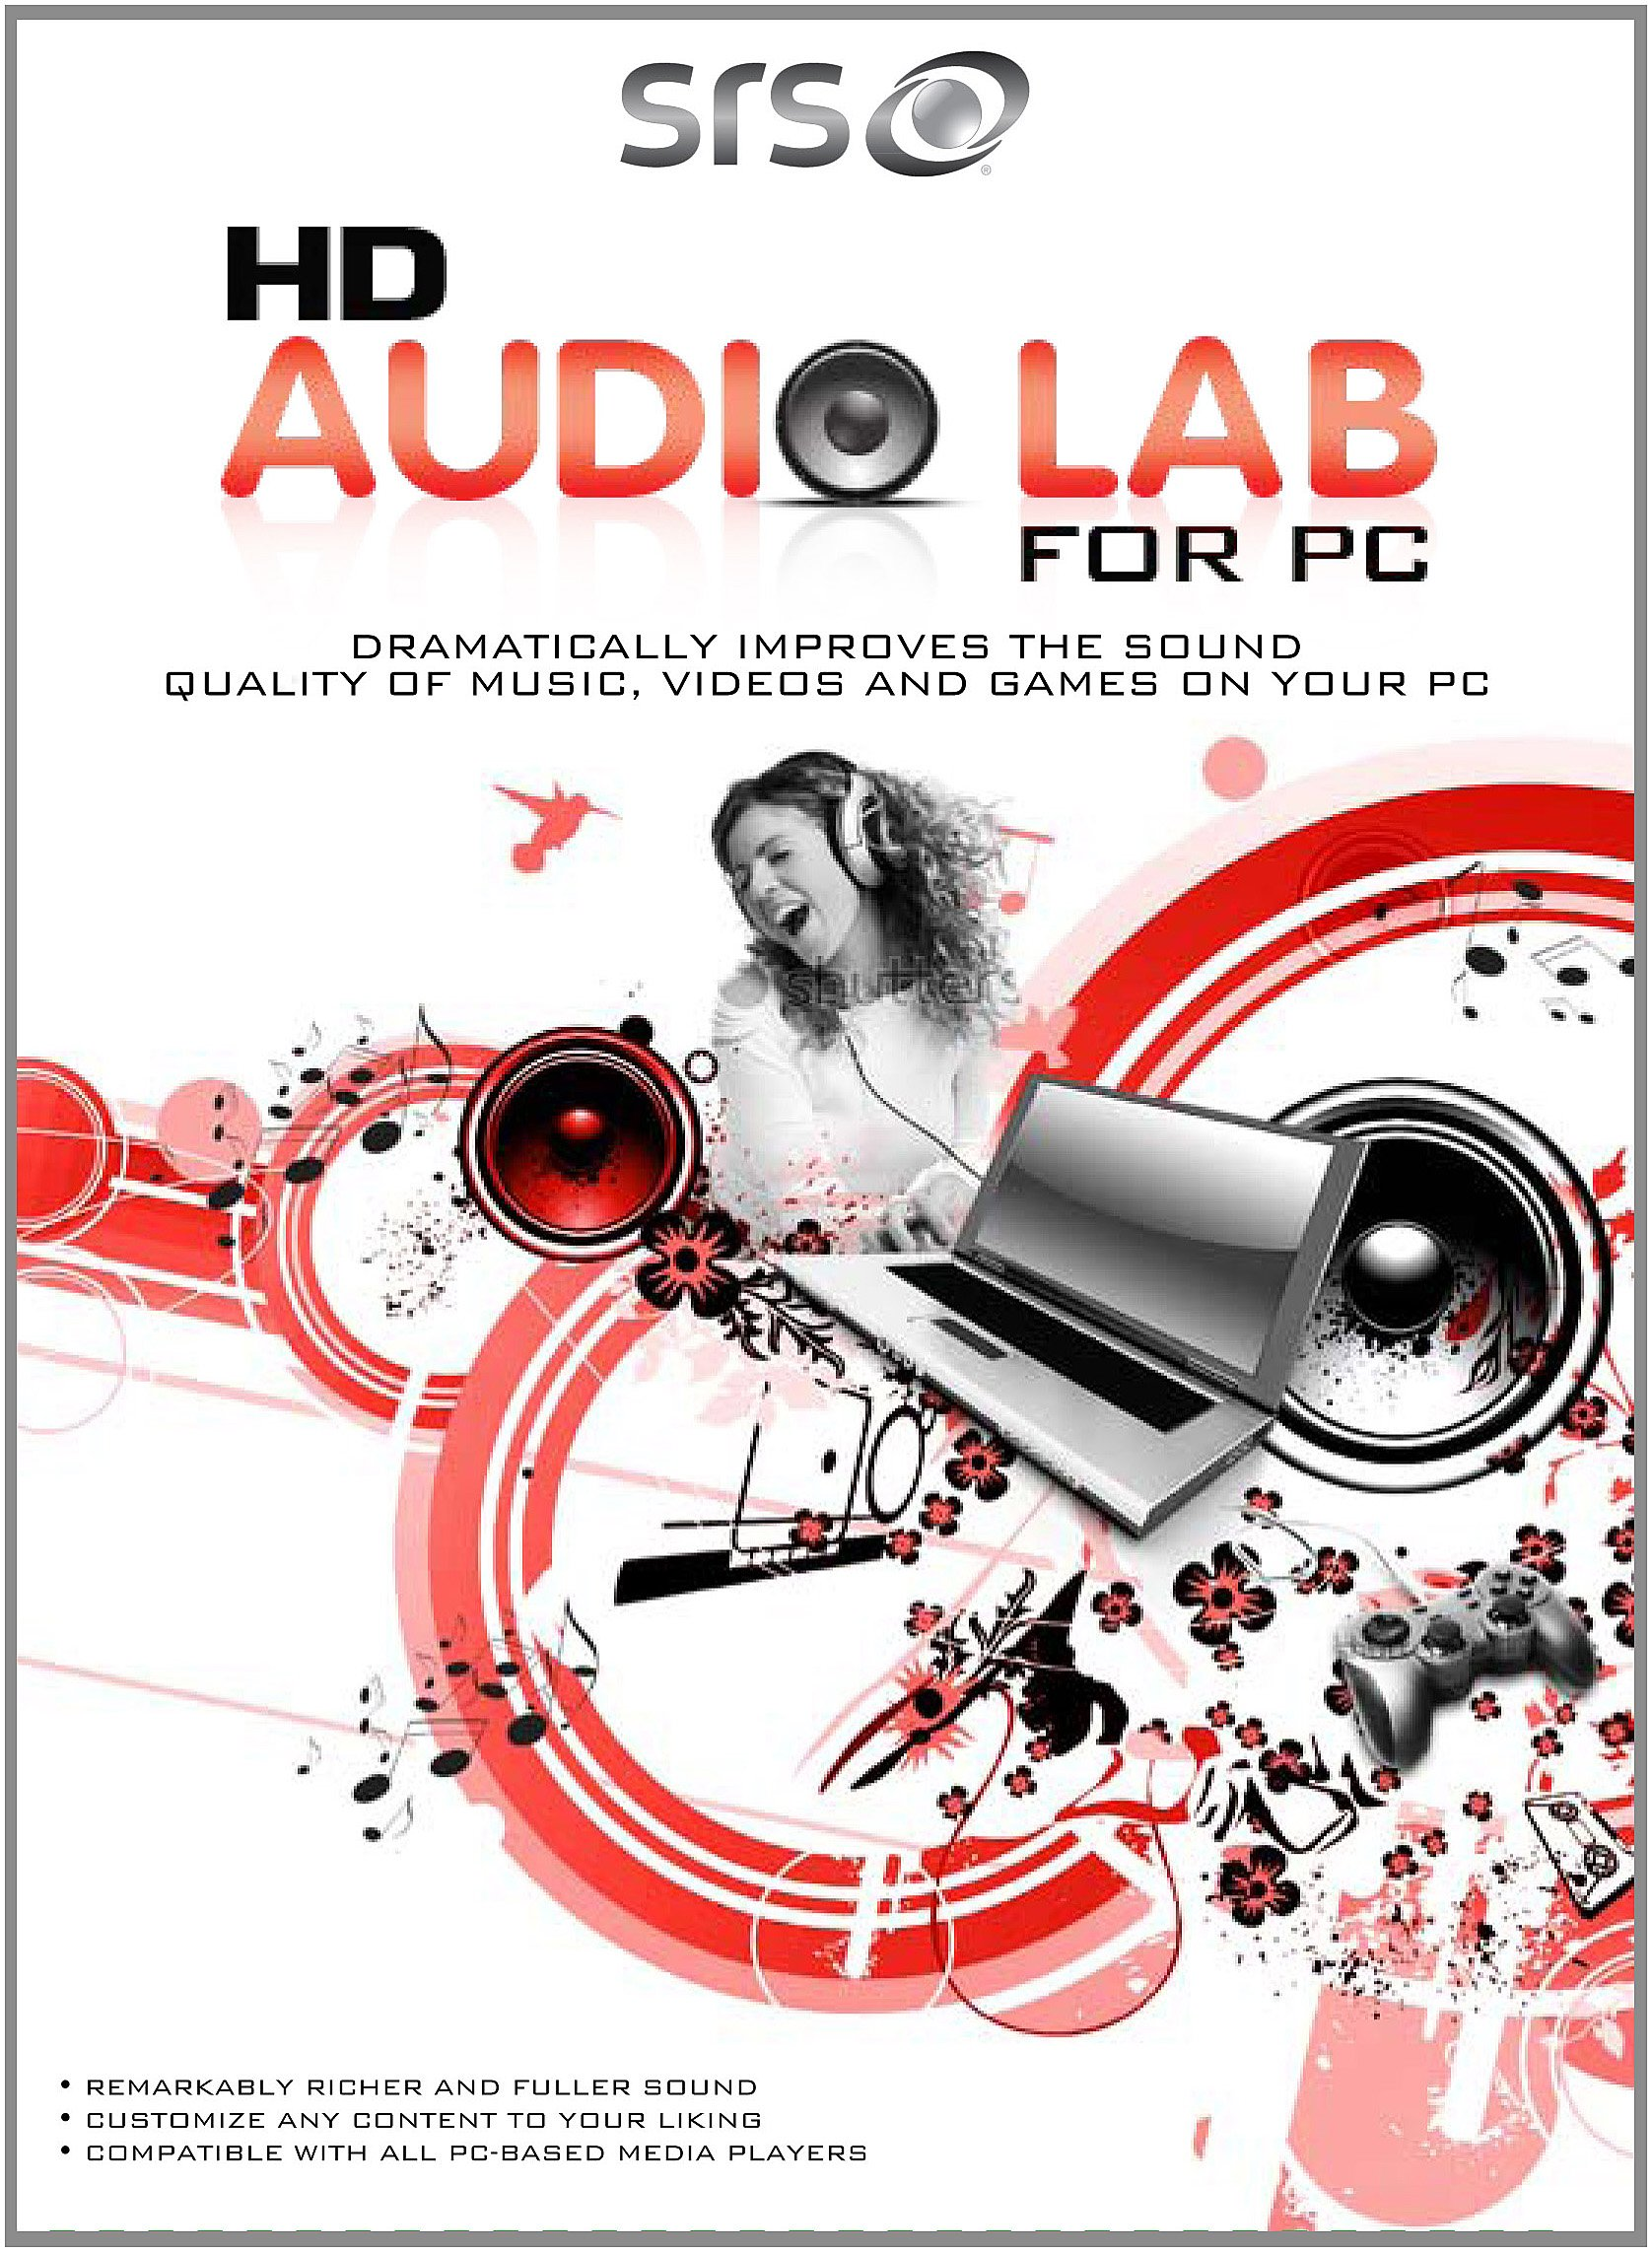 HD Audio Lab for PC - 3 Activations [Download] by SRS Labs, Inc.